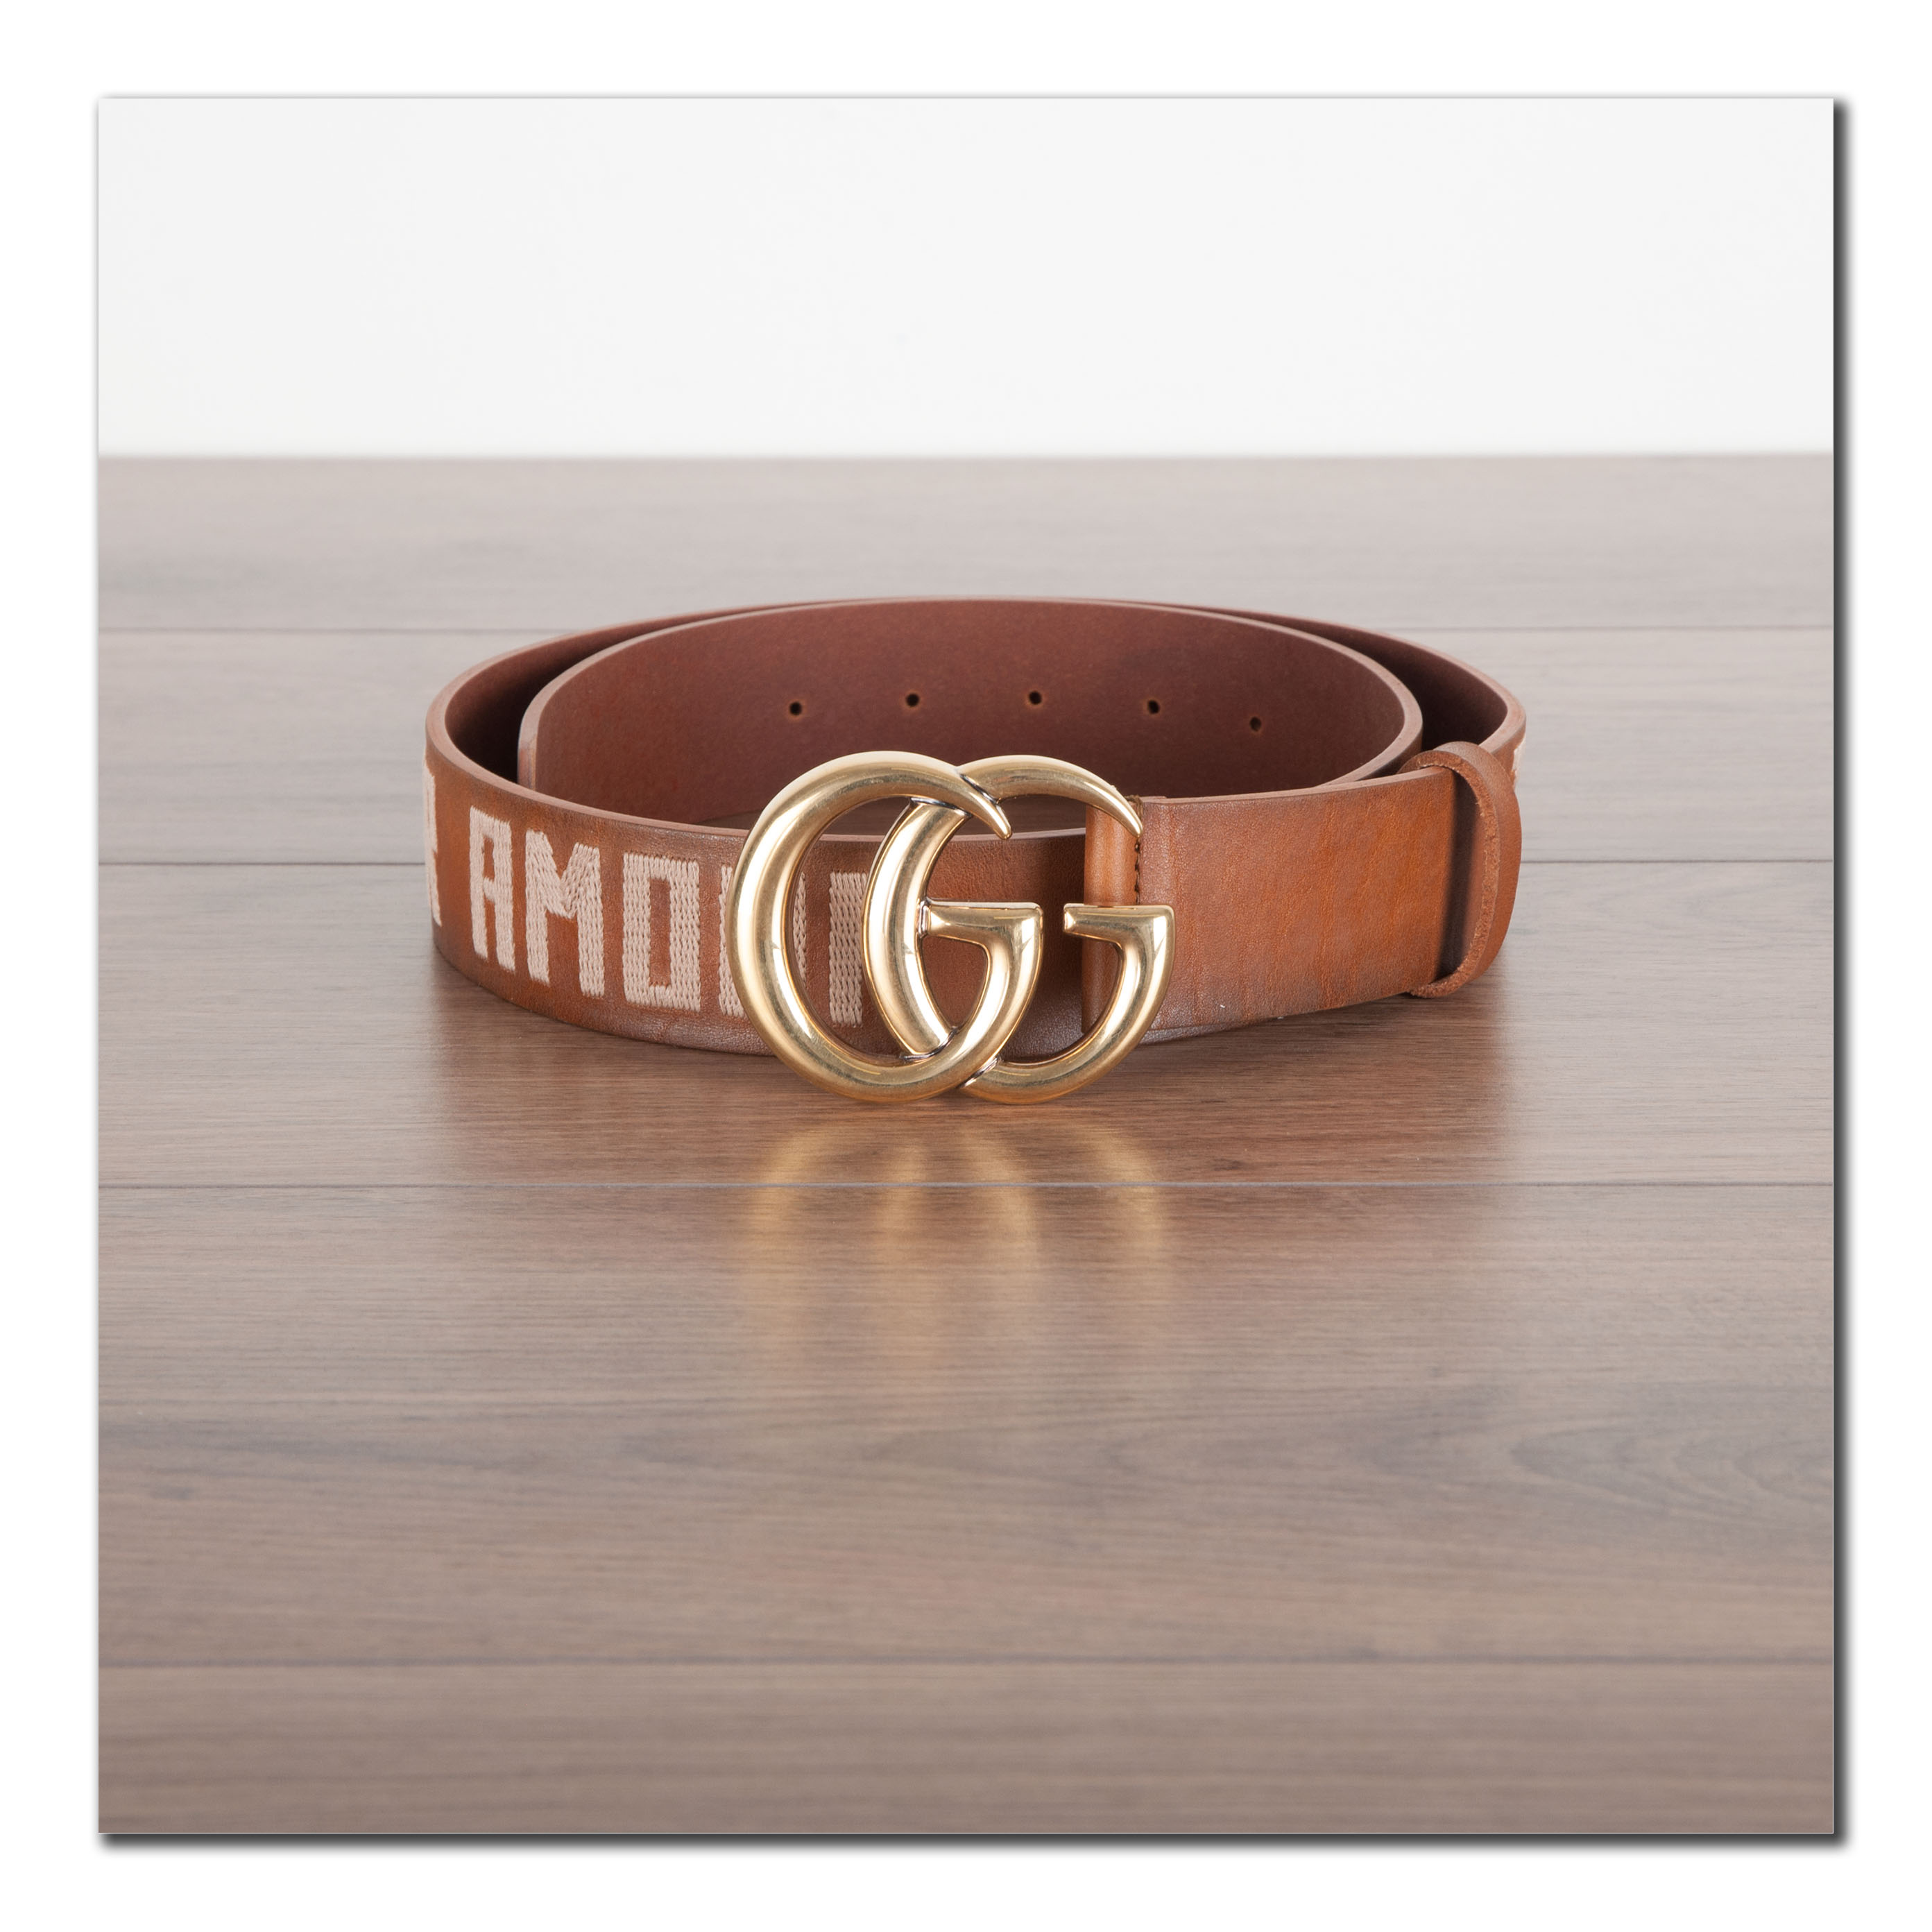 9f26ecea2b9 Details about GUCCI 790  Authentic New Brown Leather Belt With Double G  Buckle   Embroideries